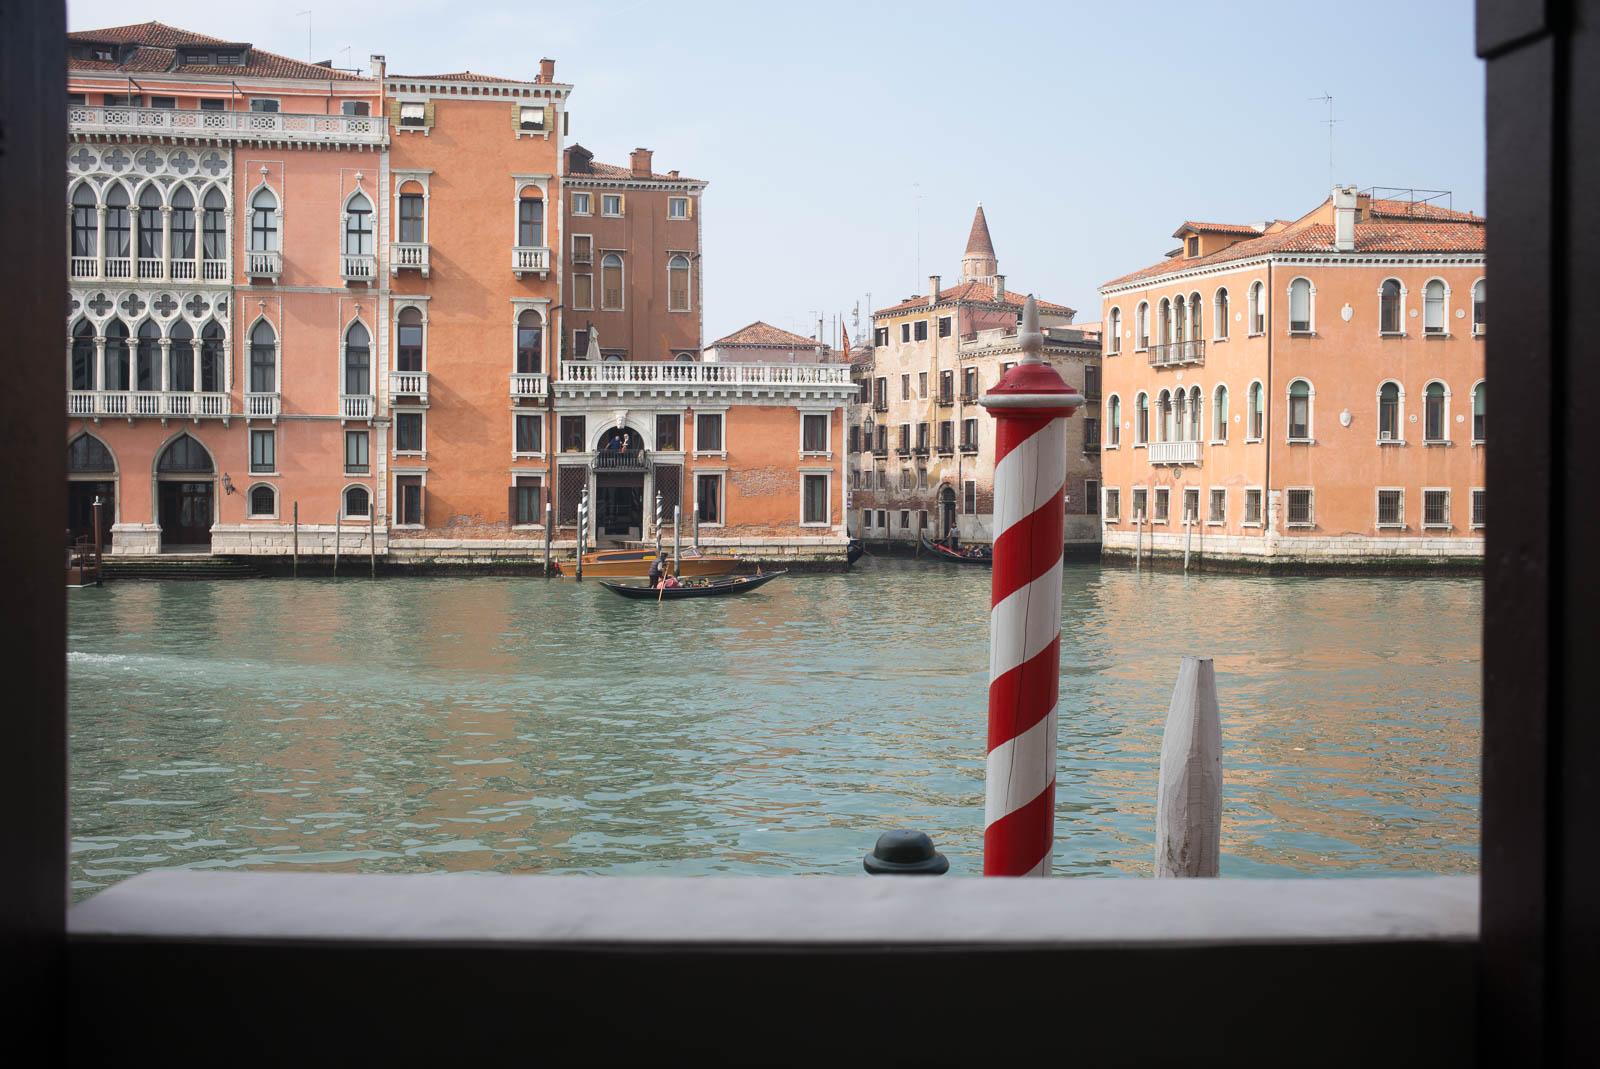 Room 004, NH Collection Hotel, Venice, Italy